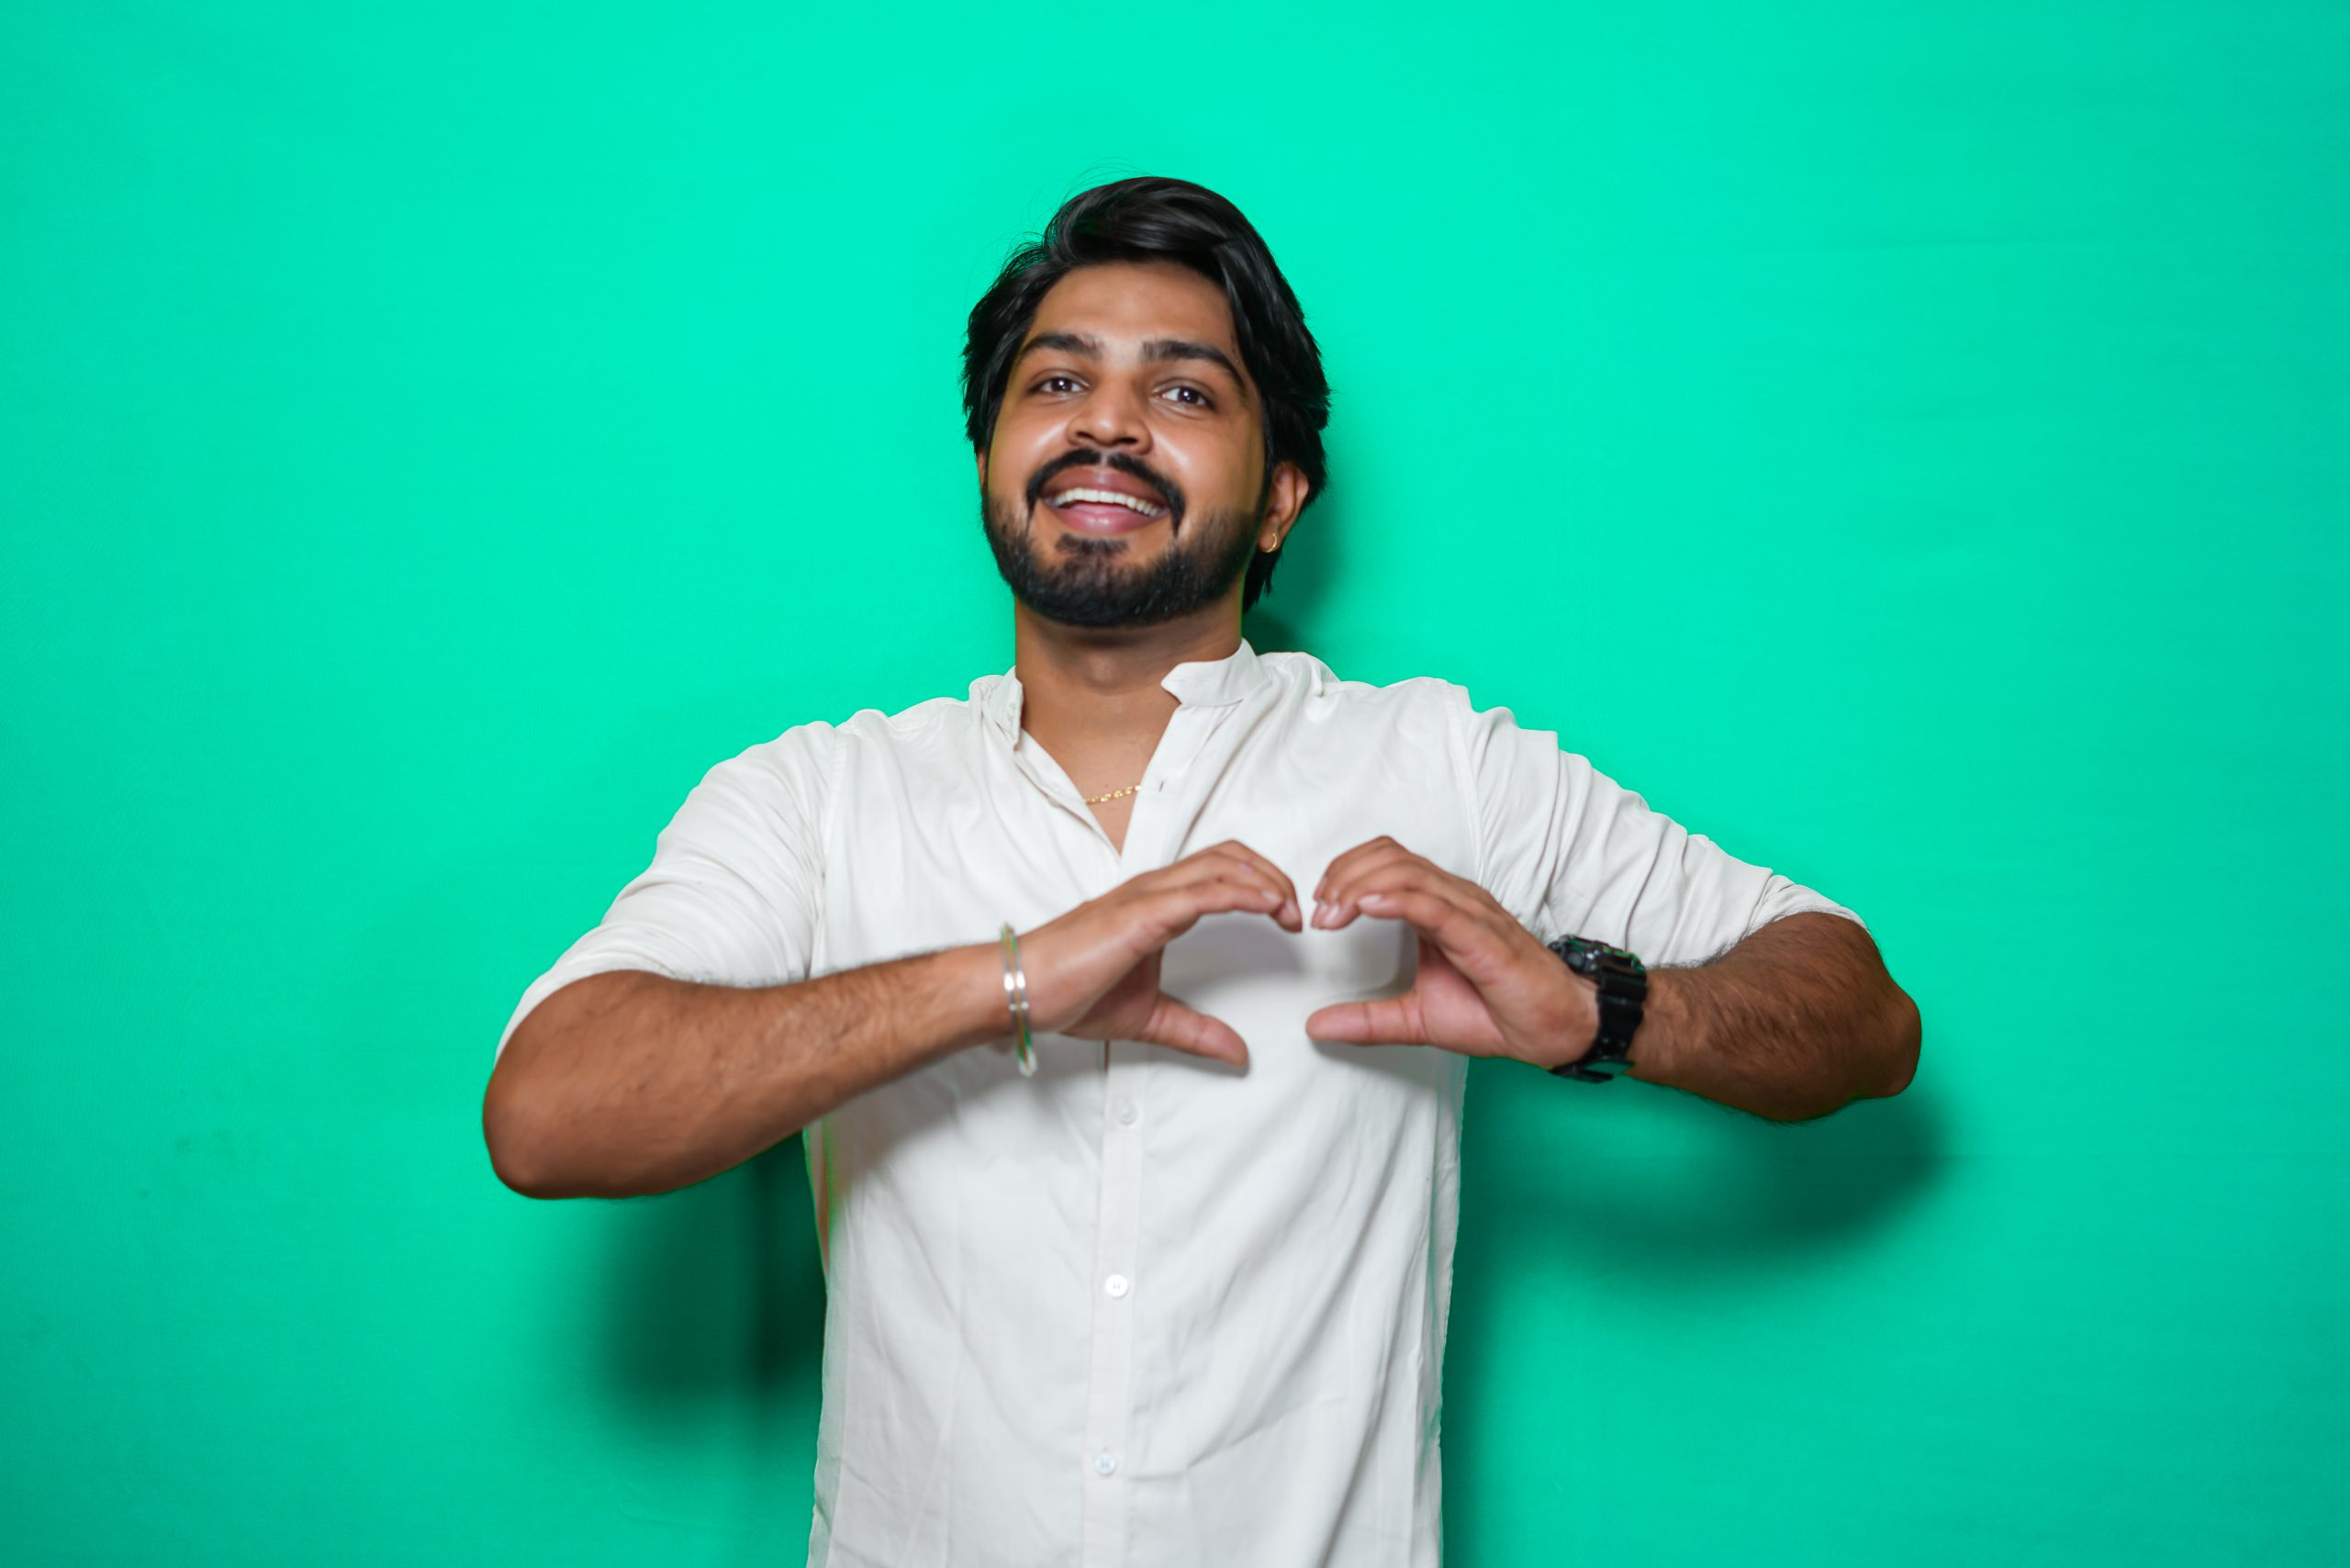 Handsome Man making Heart with hands